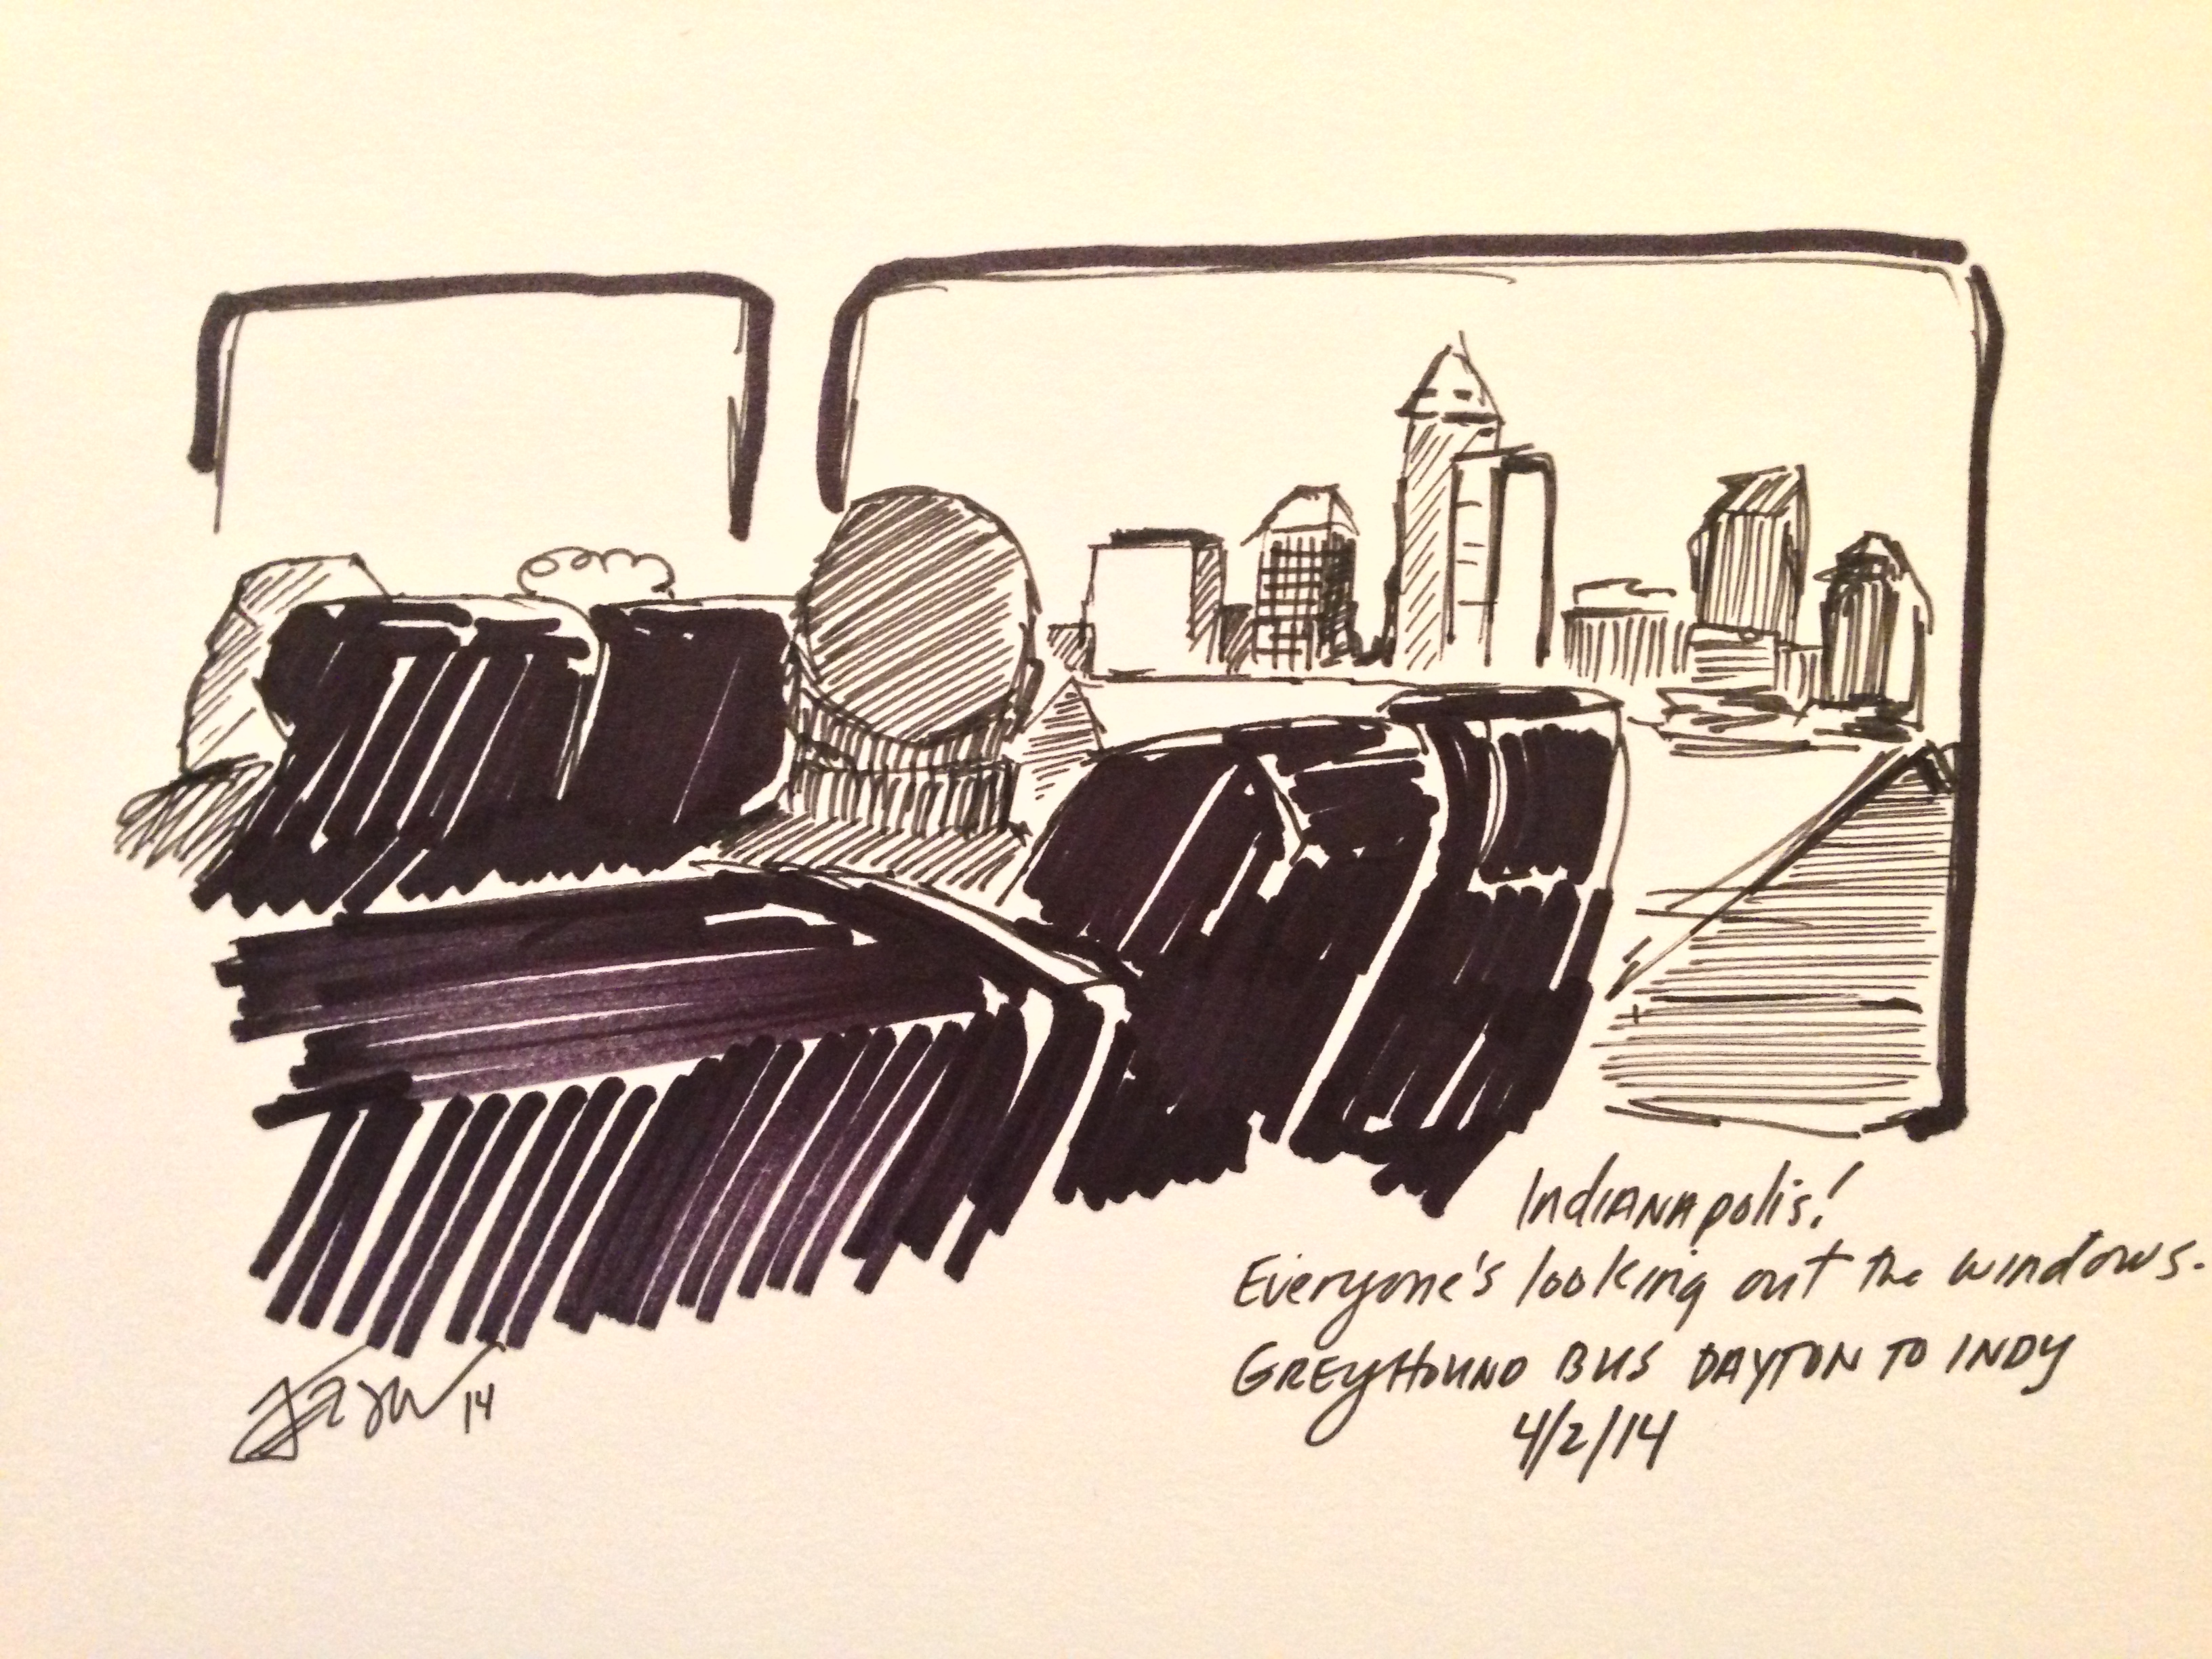 Greyhound Bus Posts Interview With Me On My Sketching Trip Bear